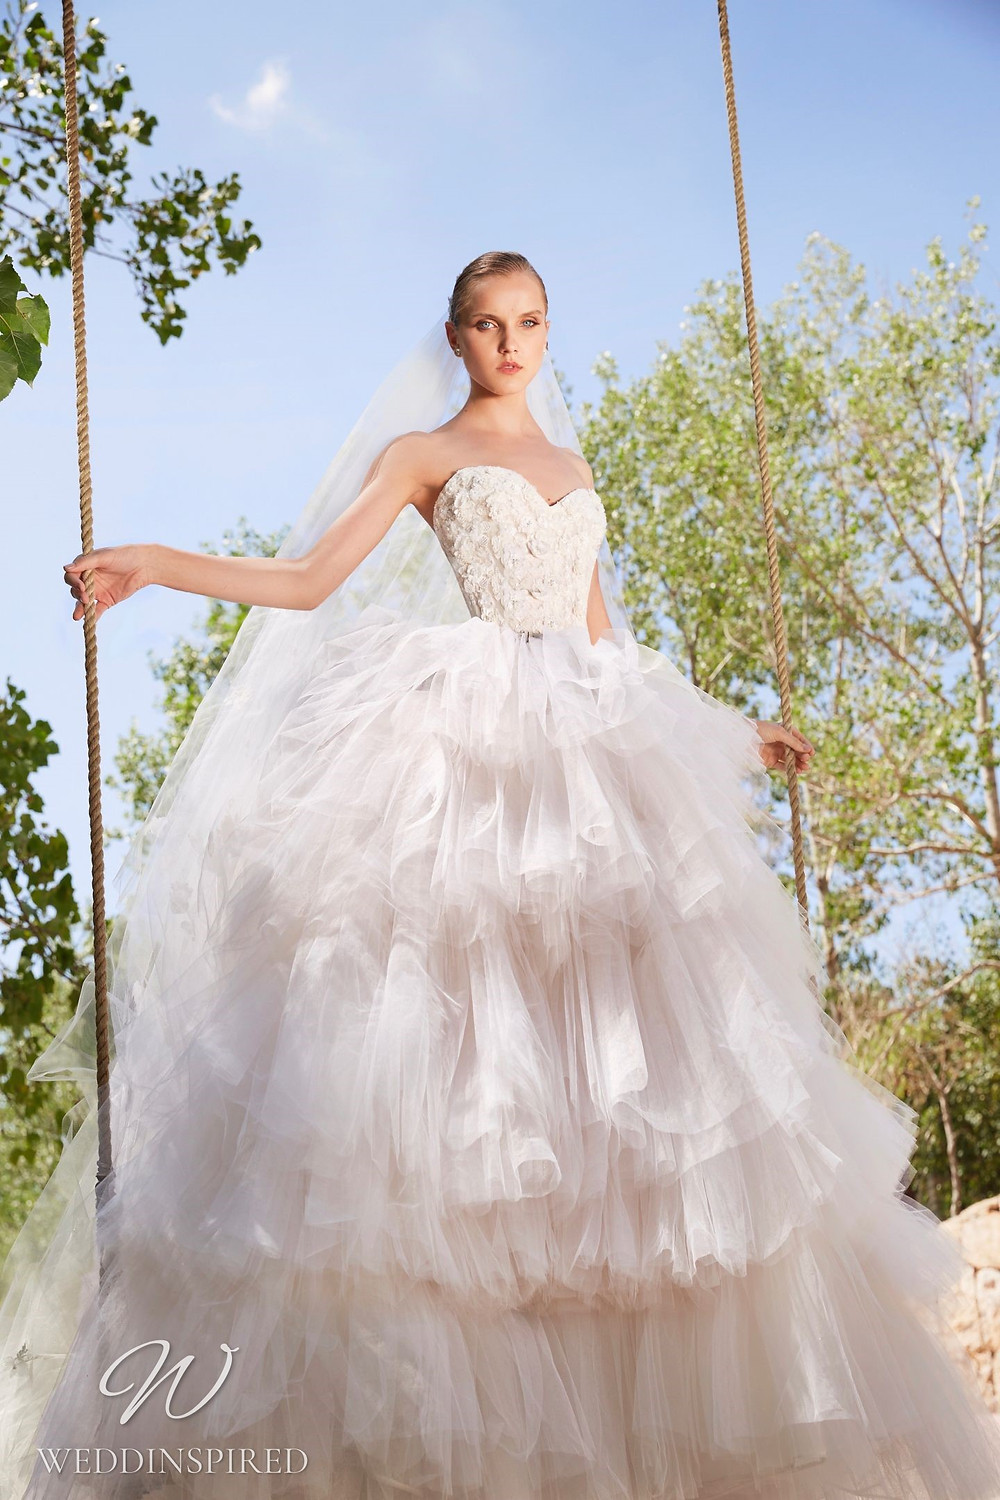 An Elie Saab Spring 2021 strapless lace and tulle ball gown wedding dress with a ruffle skirt